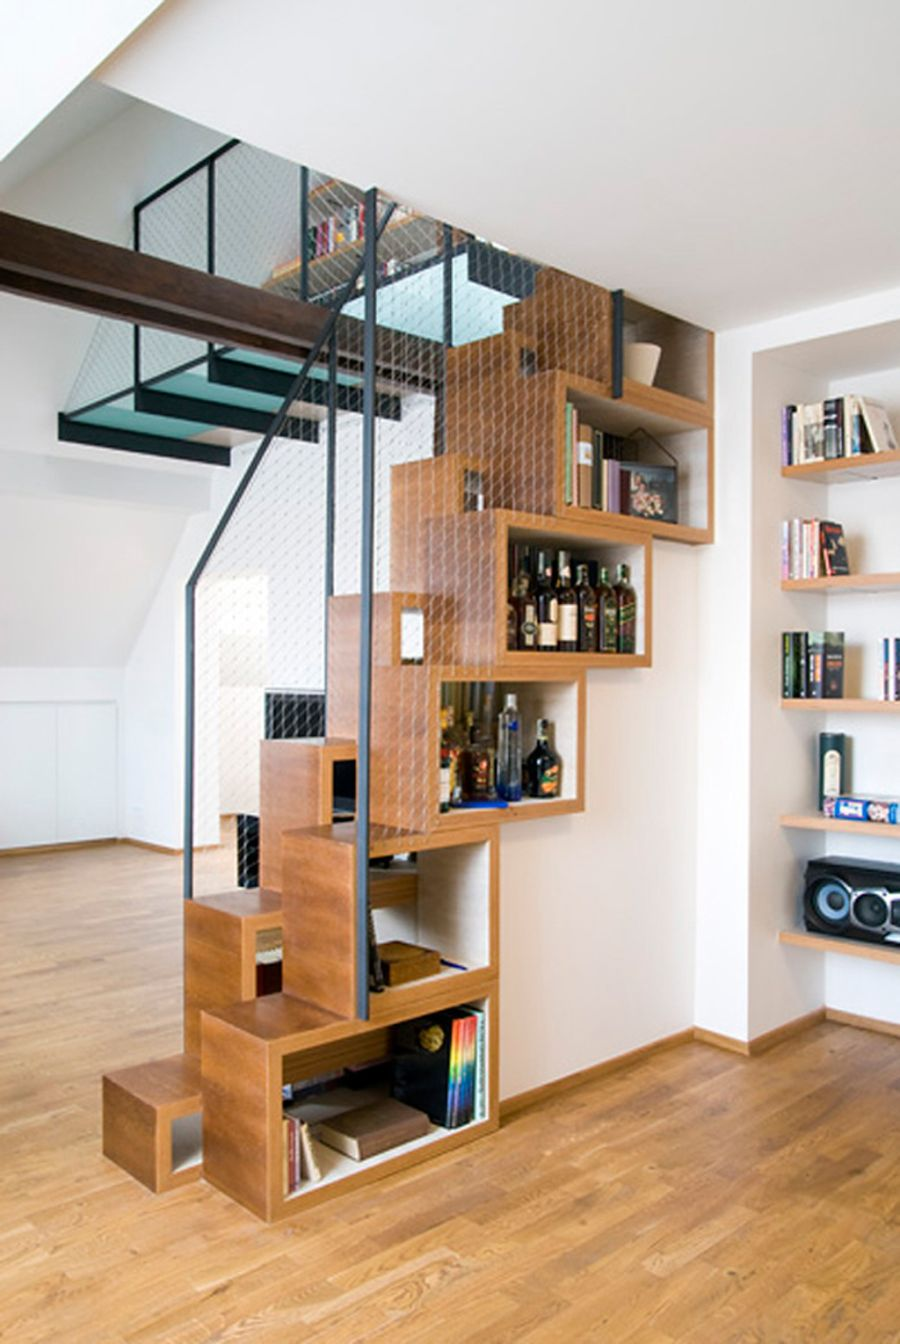 View in gallery - Alternating Tread Stairs Change The Perspective With New Designs